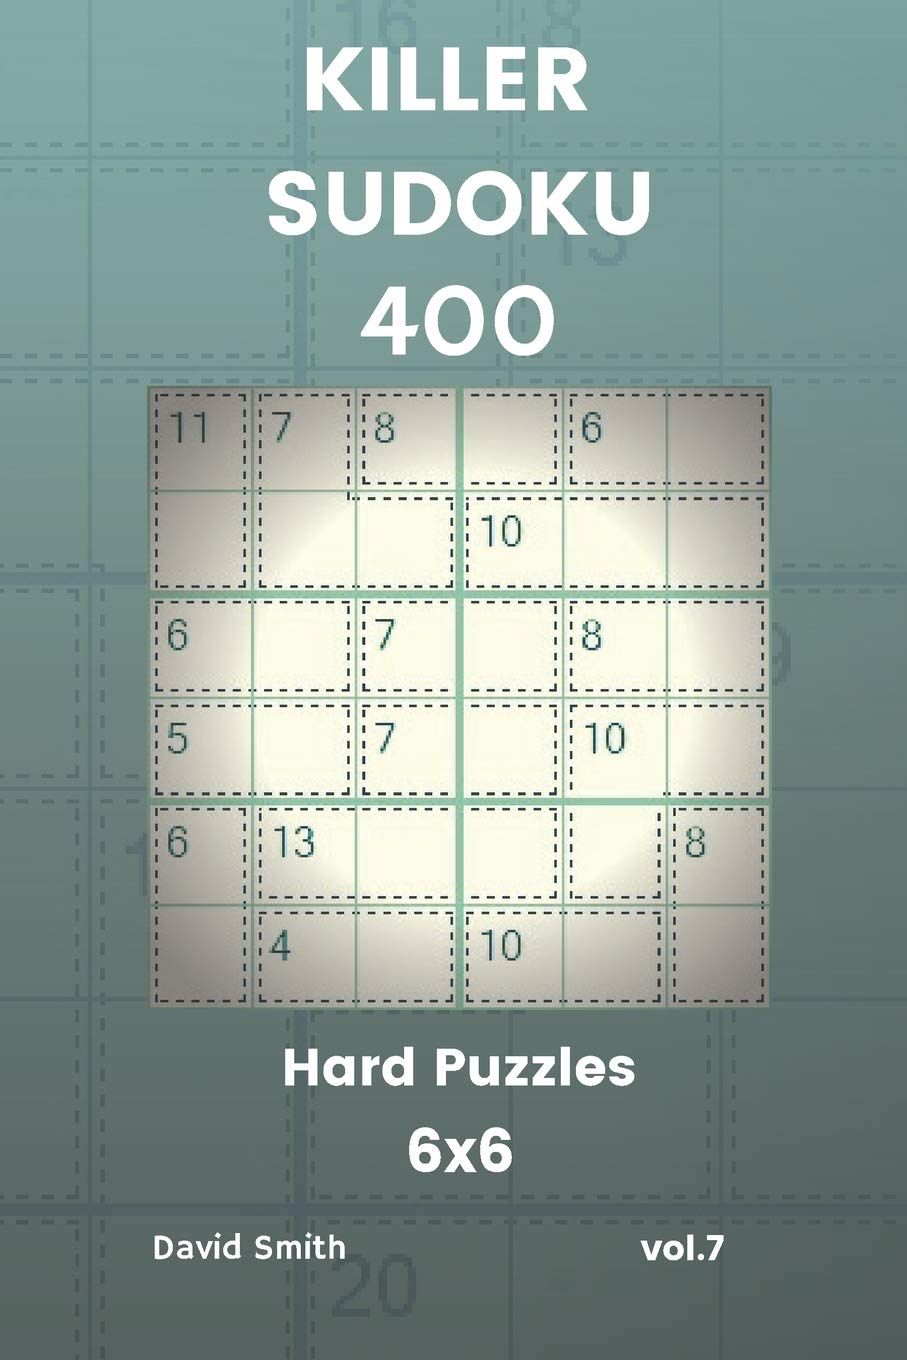 Buy Killer Sudoku - 400 Hard Puzzles 6x6 Vol 7 Book Online